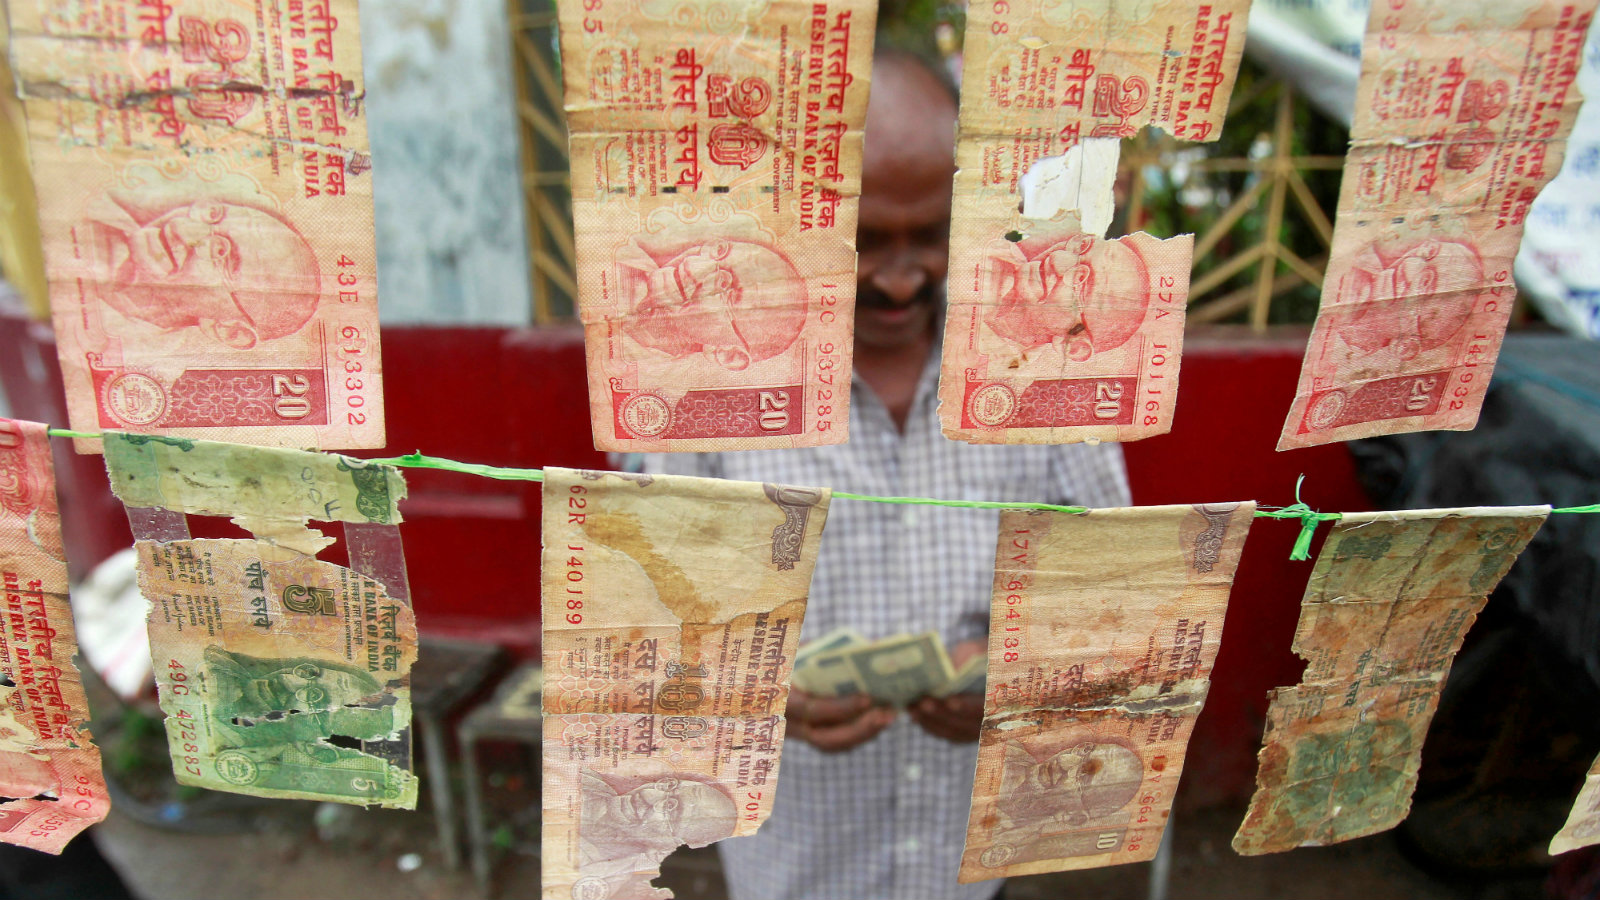 A roadside currency exchange vendor counts money at his stall in Agartala, India May 19, 2016.